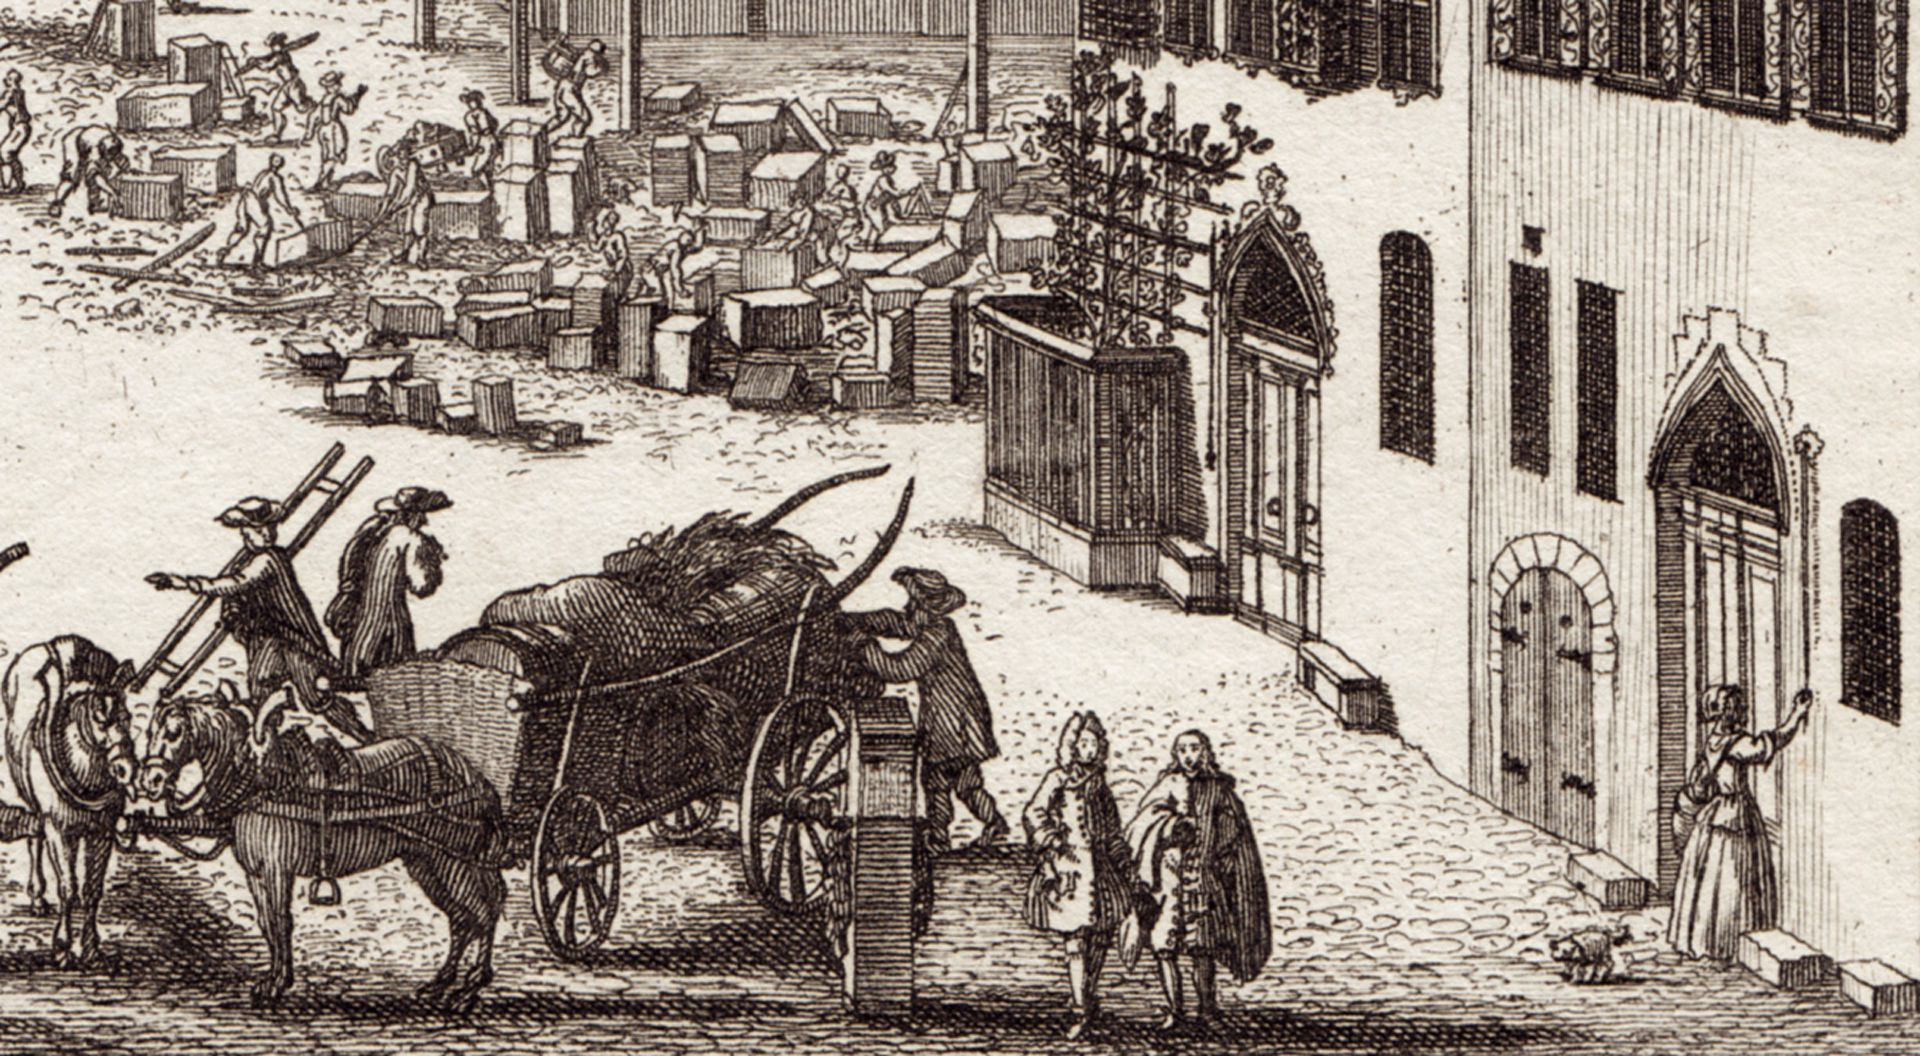 Prospect of the place called Dilling´s Court in Nuremberg Detail with street scene